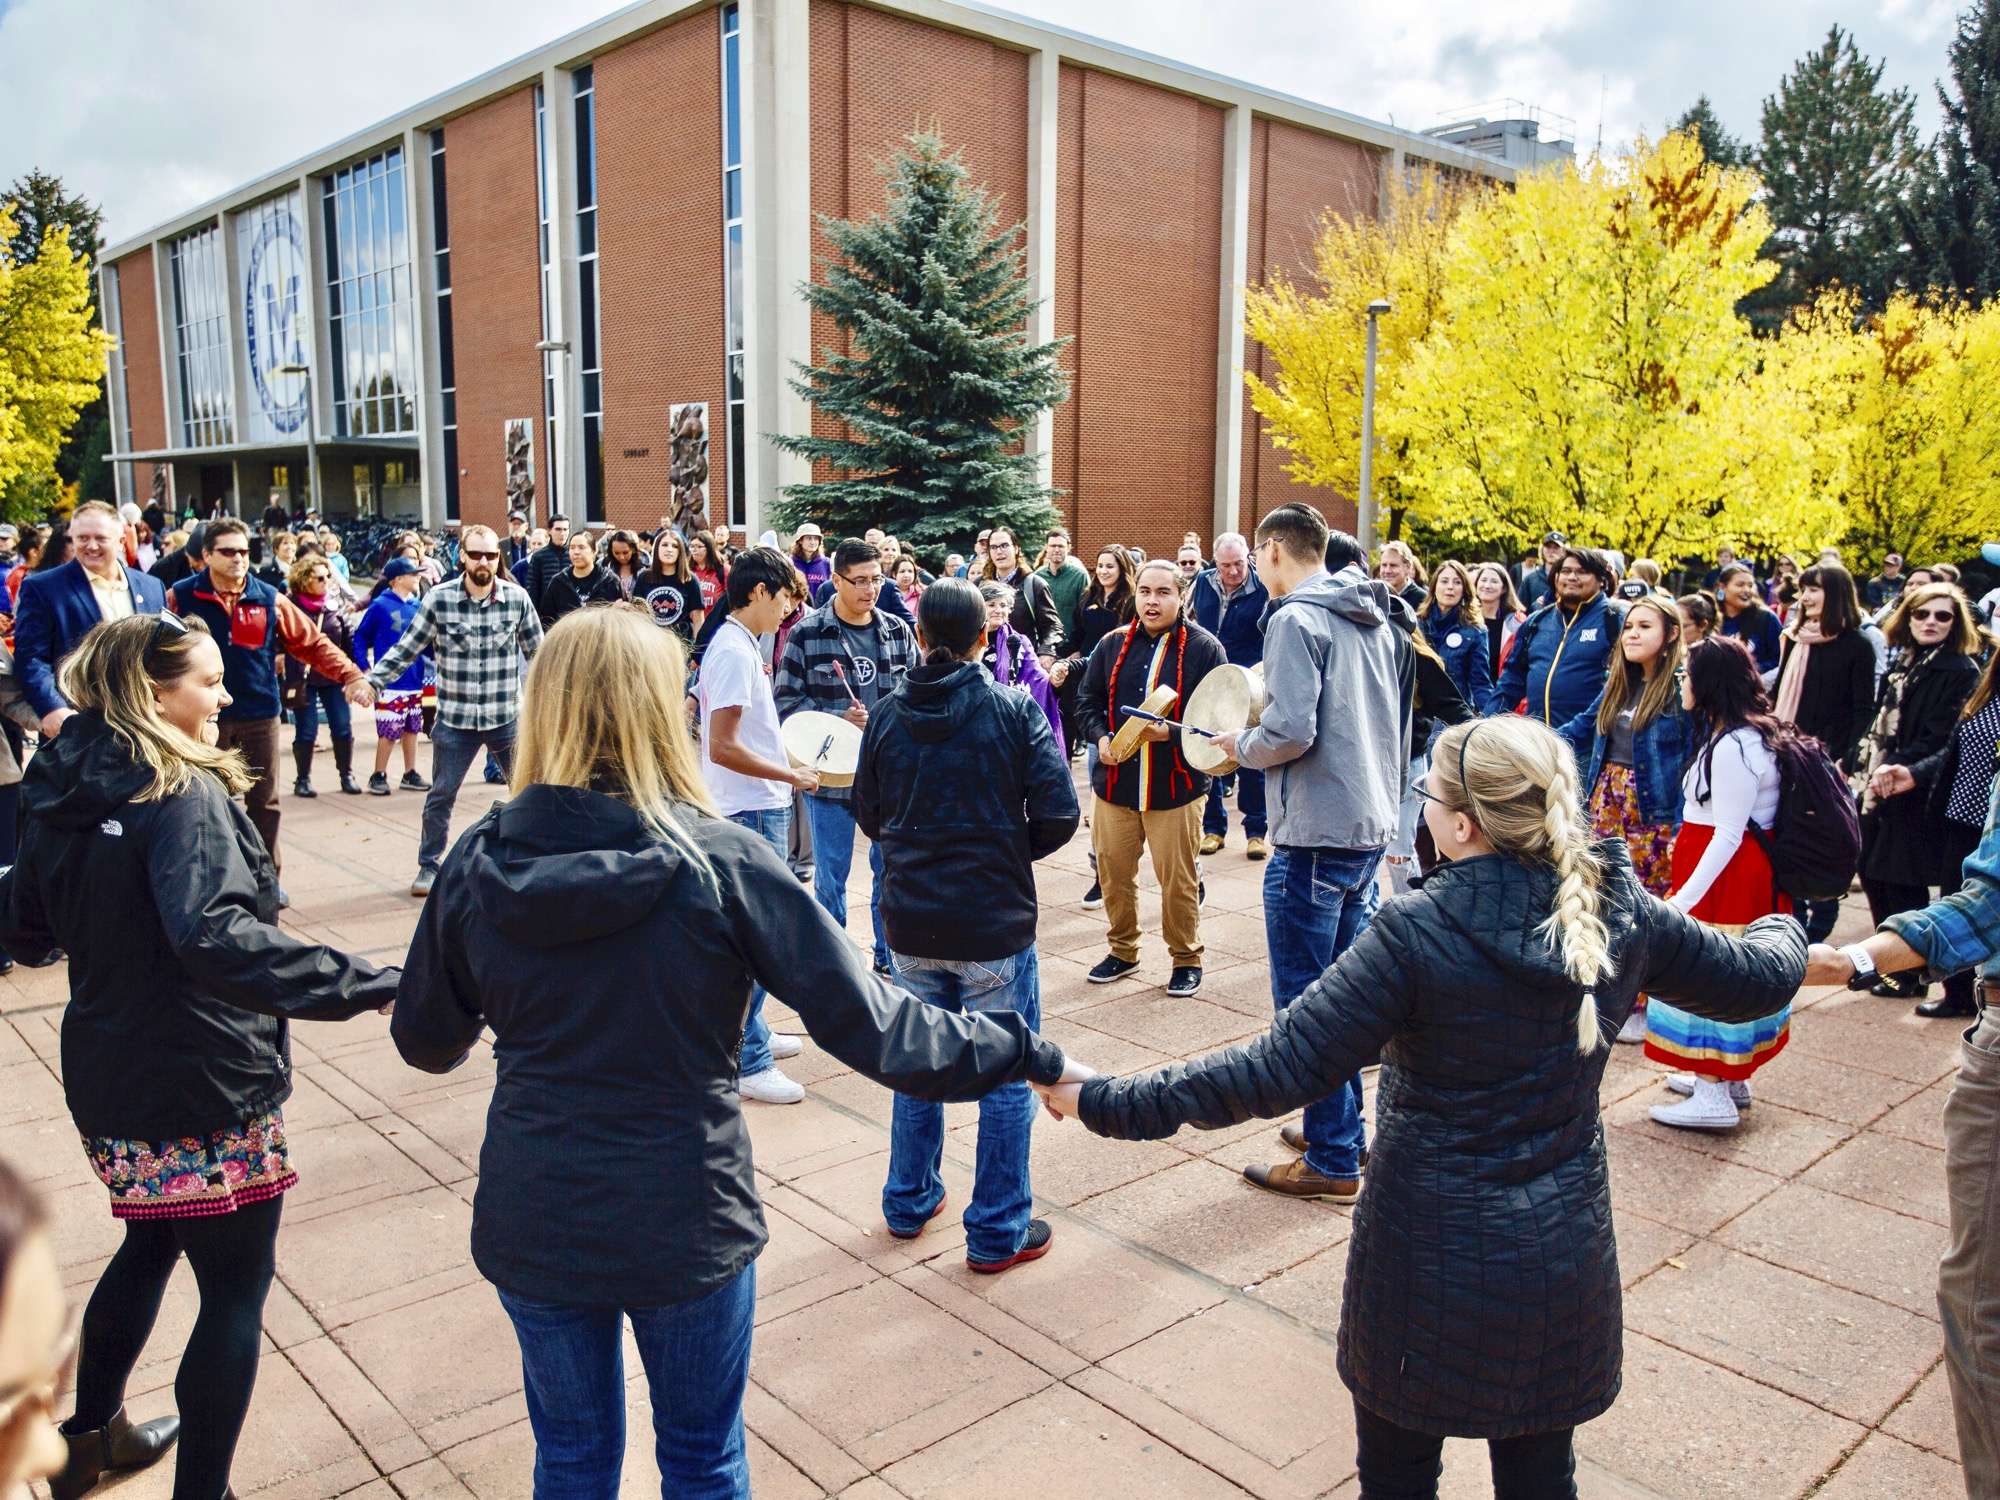 MSU celebrates Indigenous Peoples Day Oct. 14 and with activities throughout month